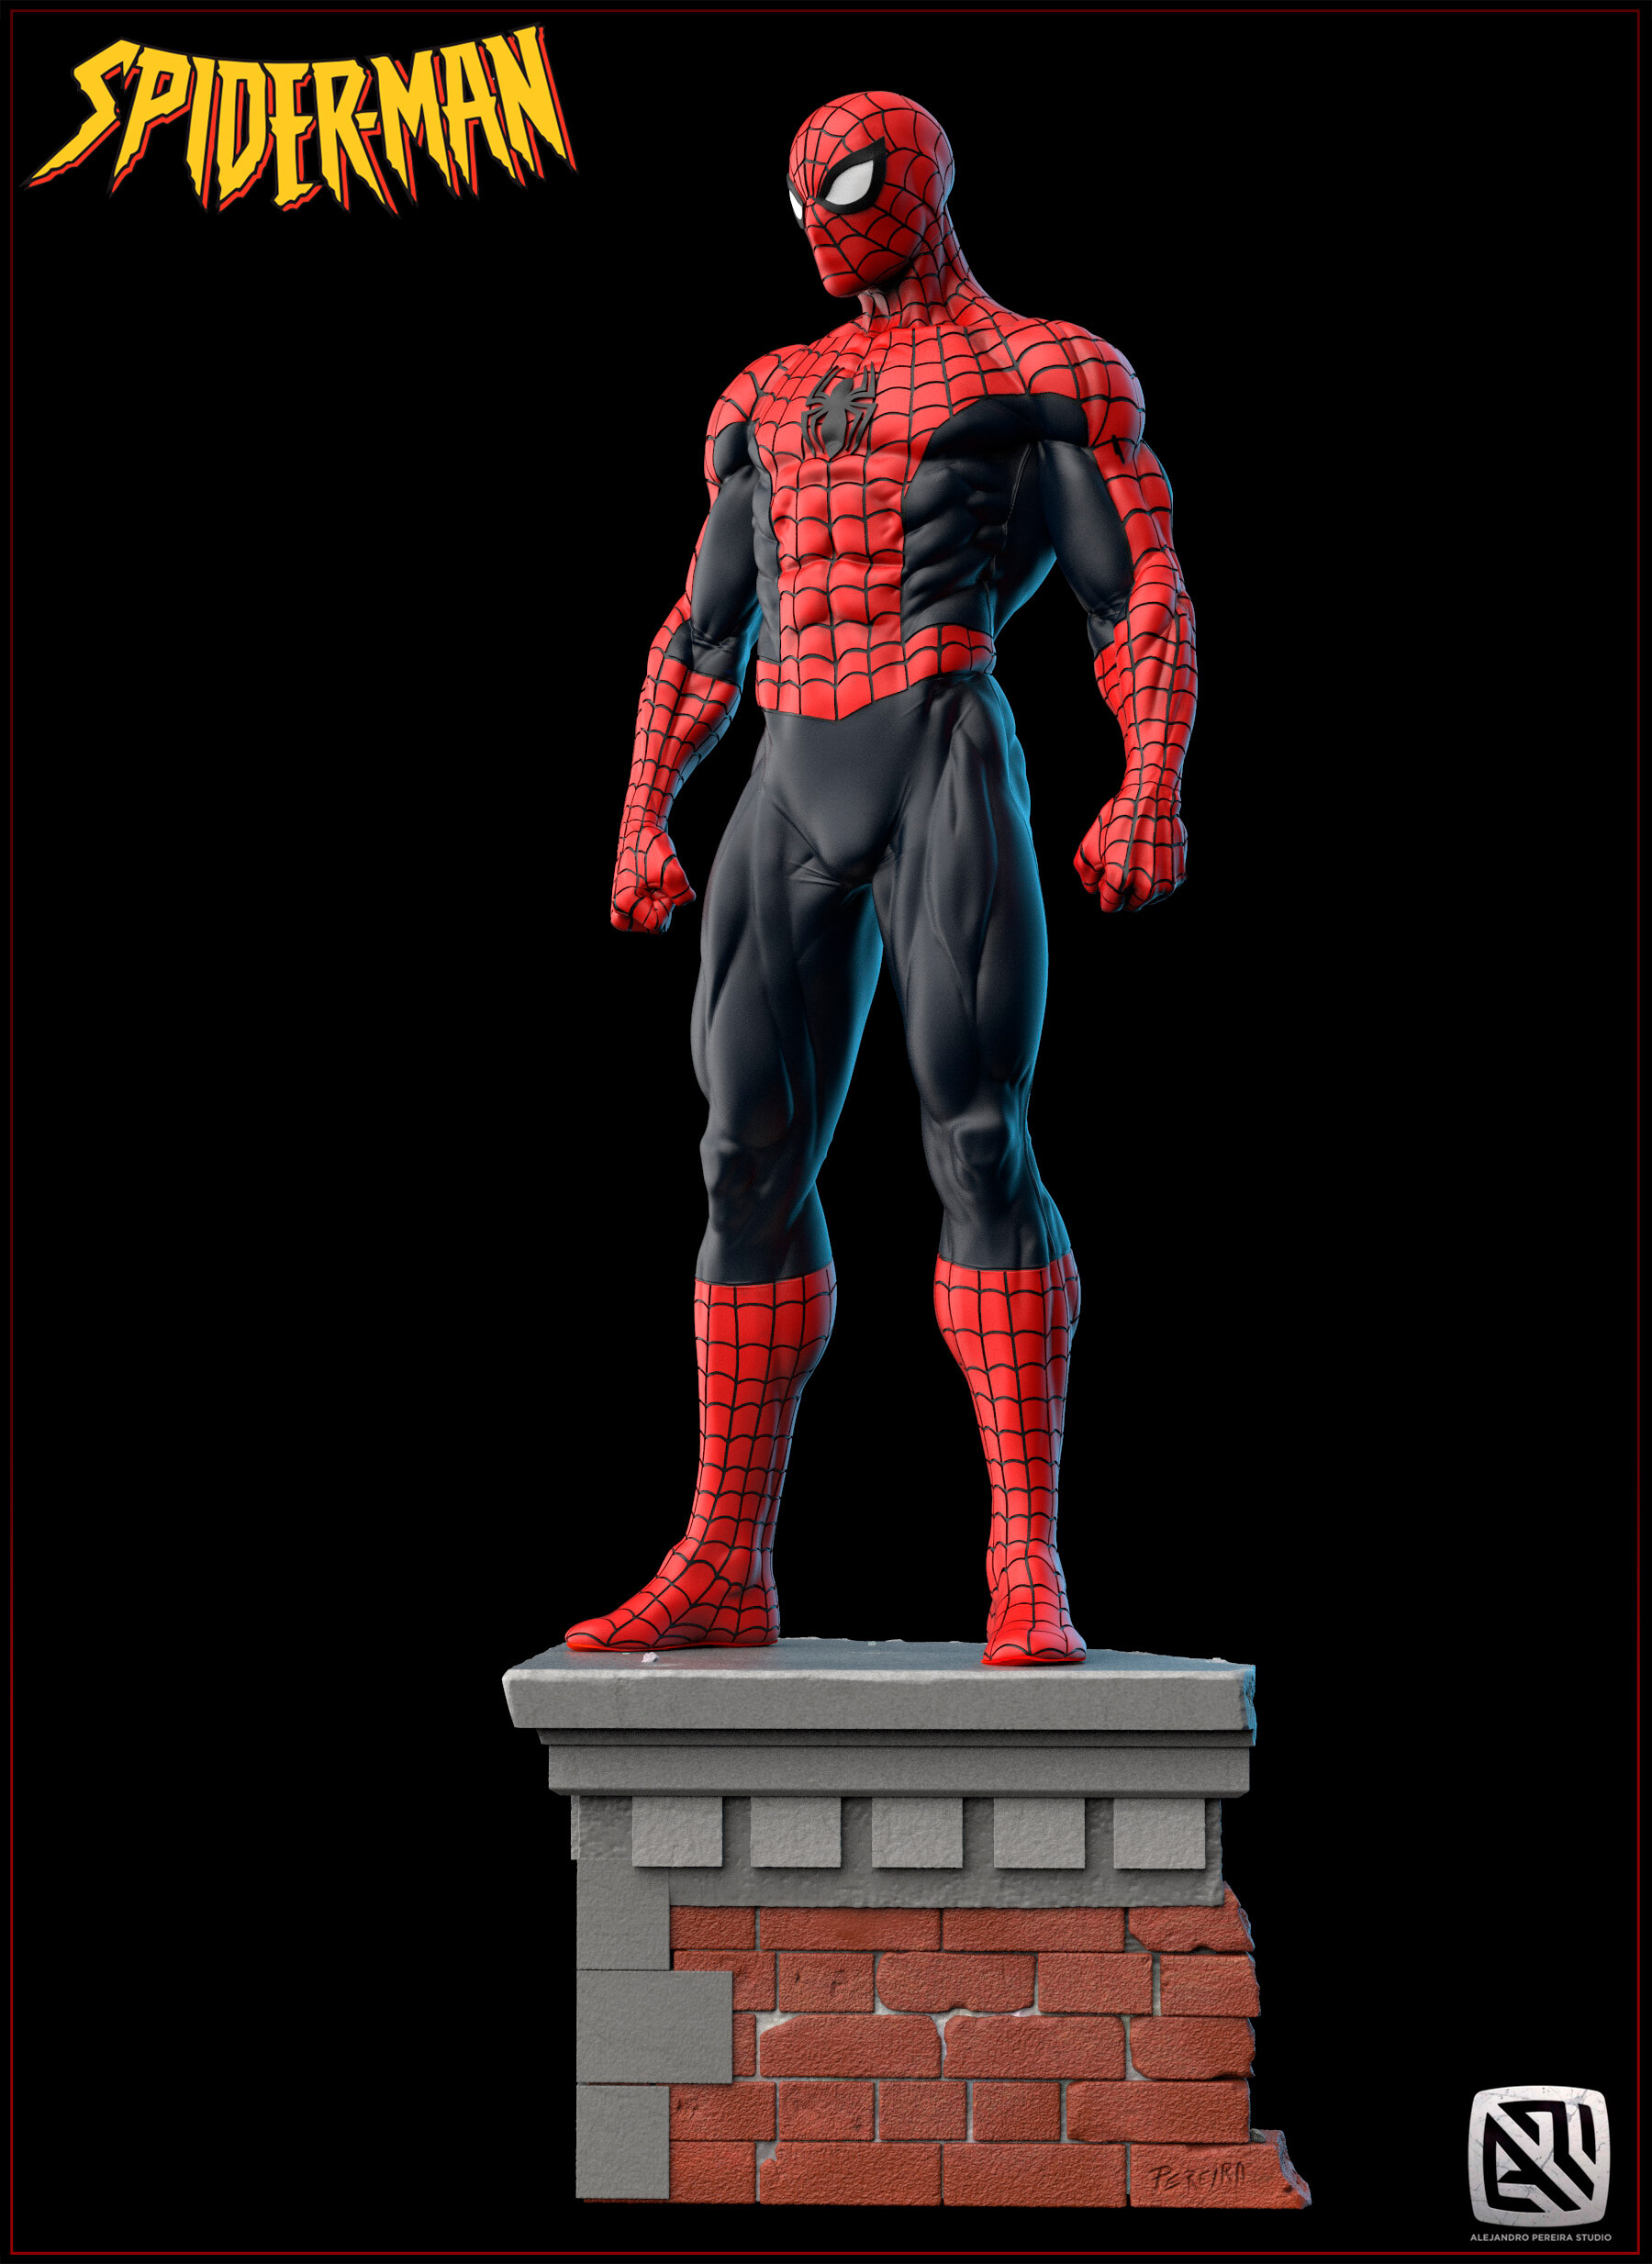 Alejandro pereira spidey render color 012